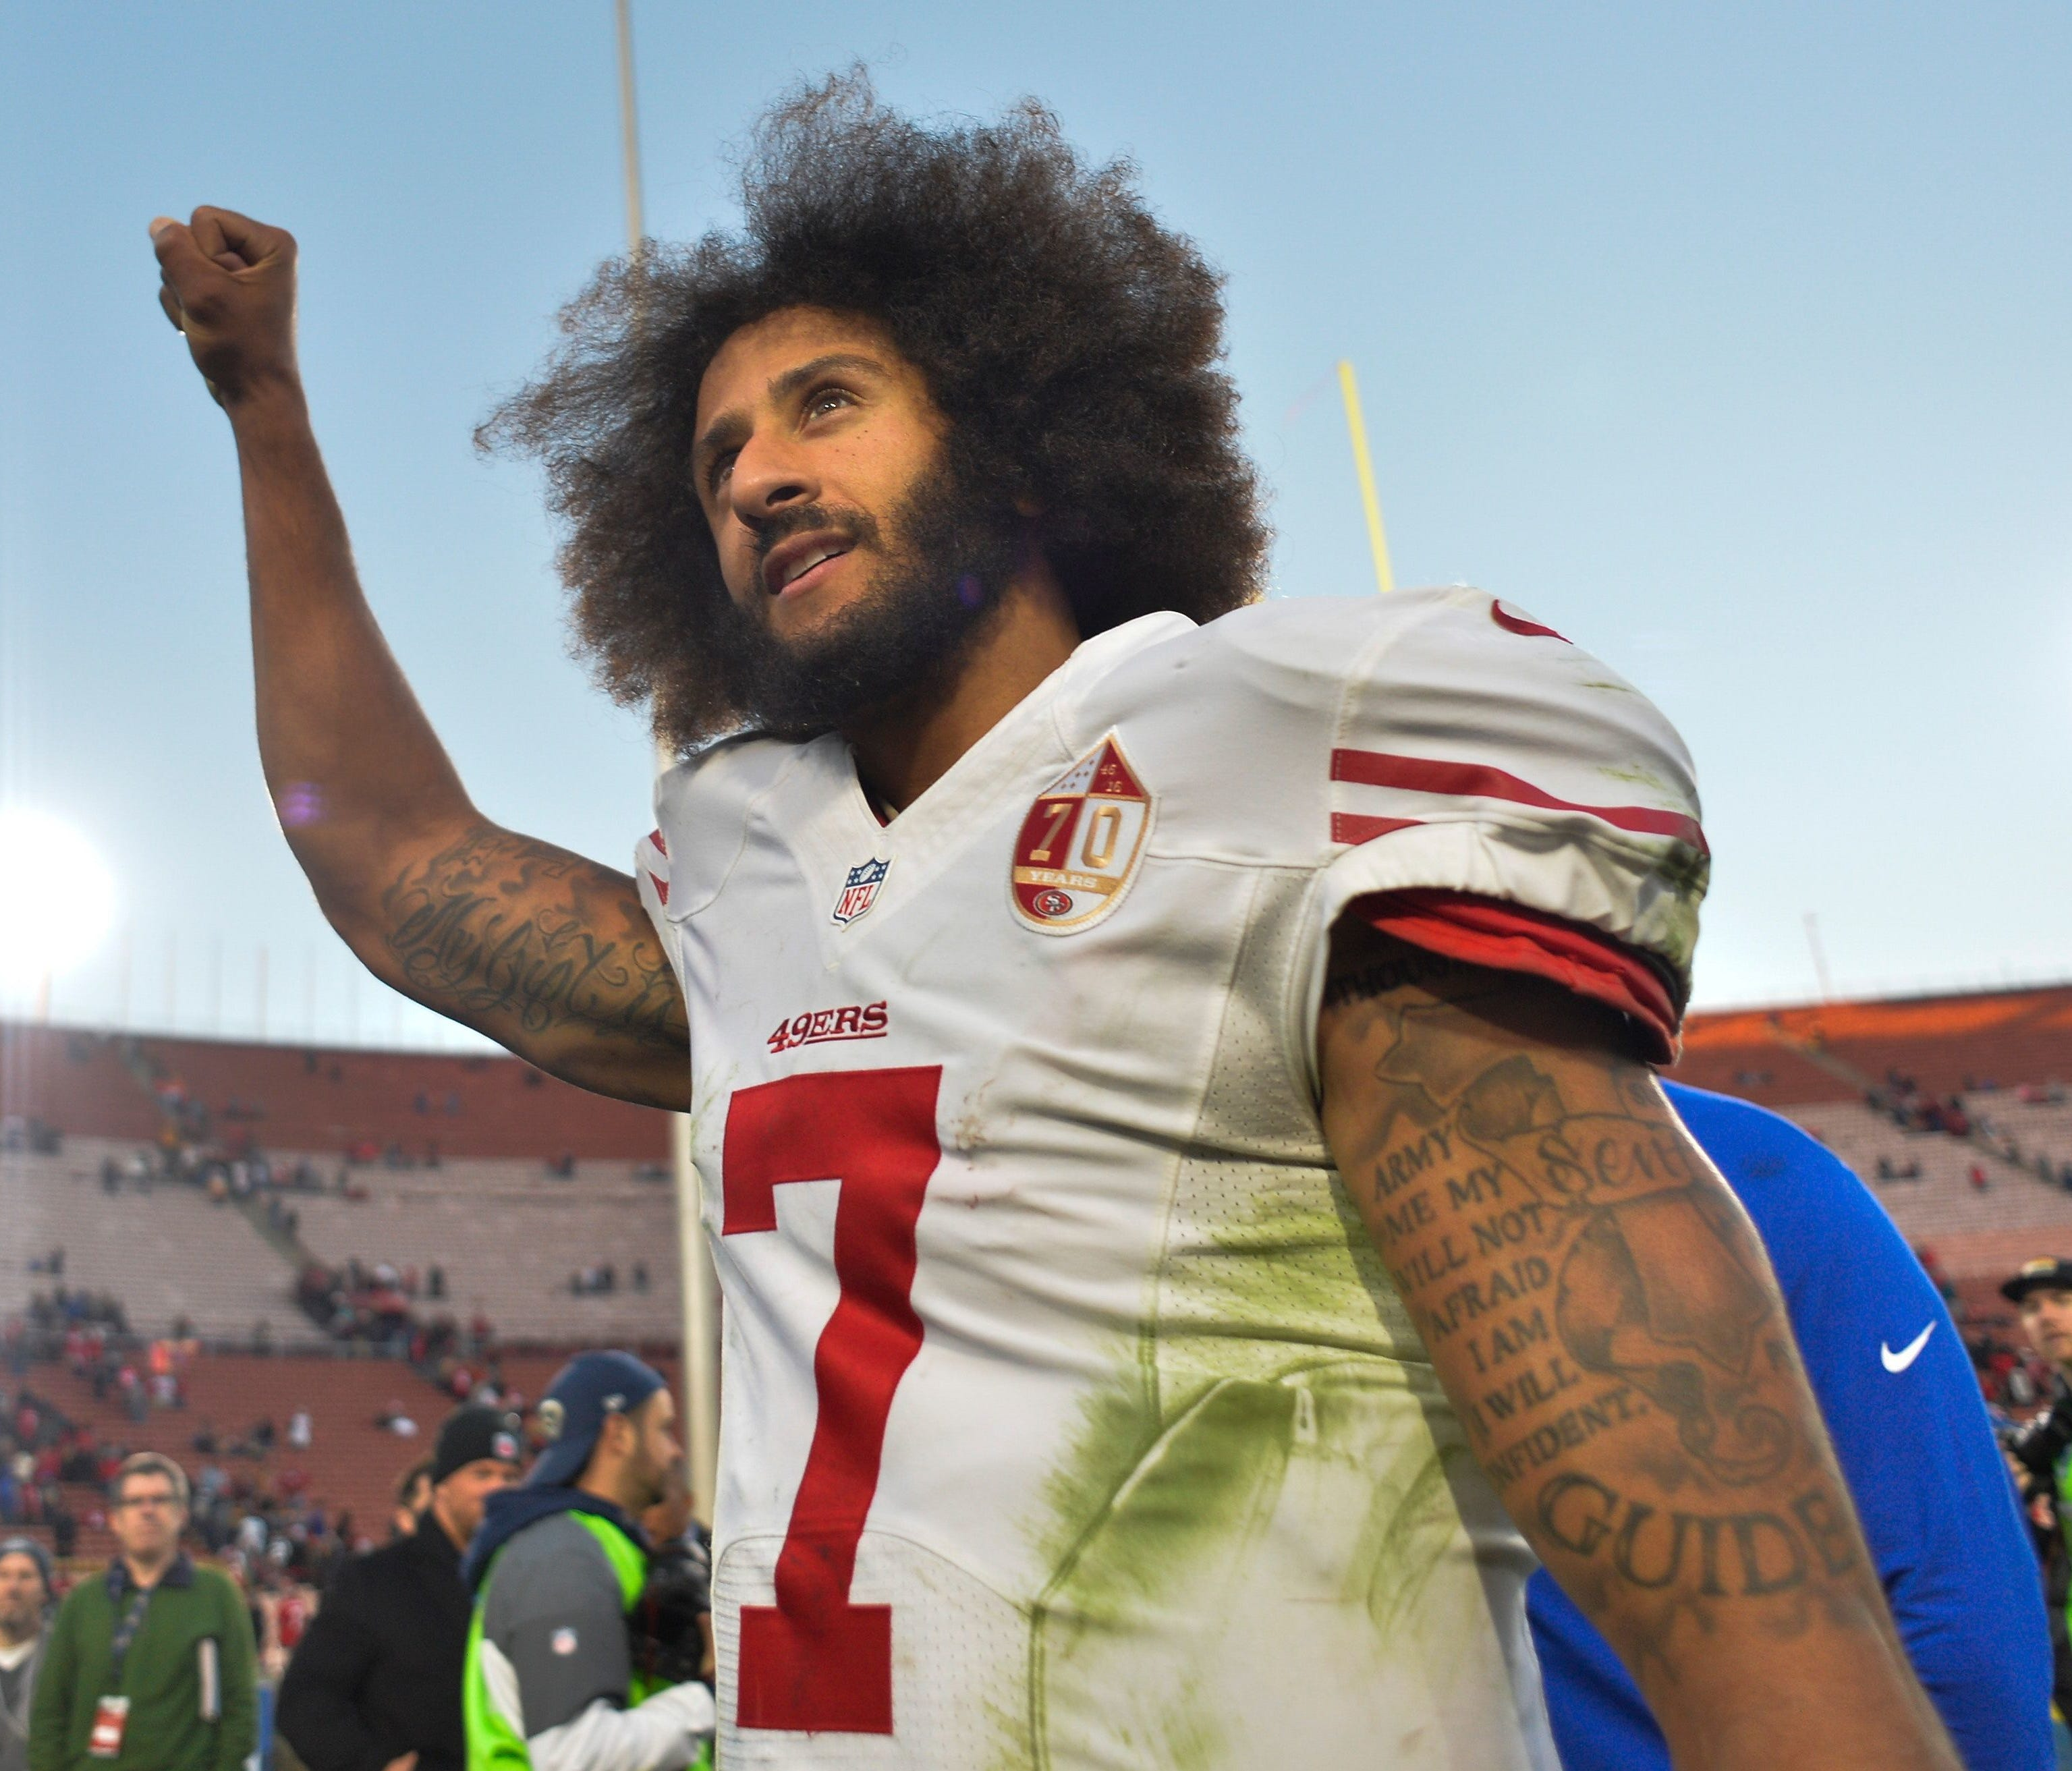 Free agent QB Colin Kaepernick hasn't played an NFL game since 2016, when he began protesting during the national anthem.